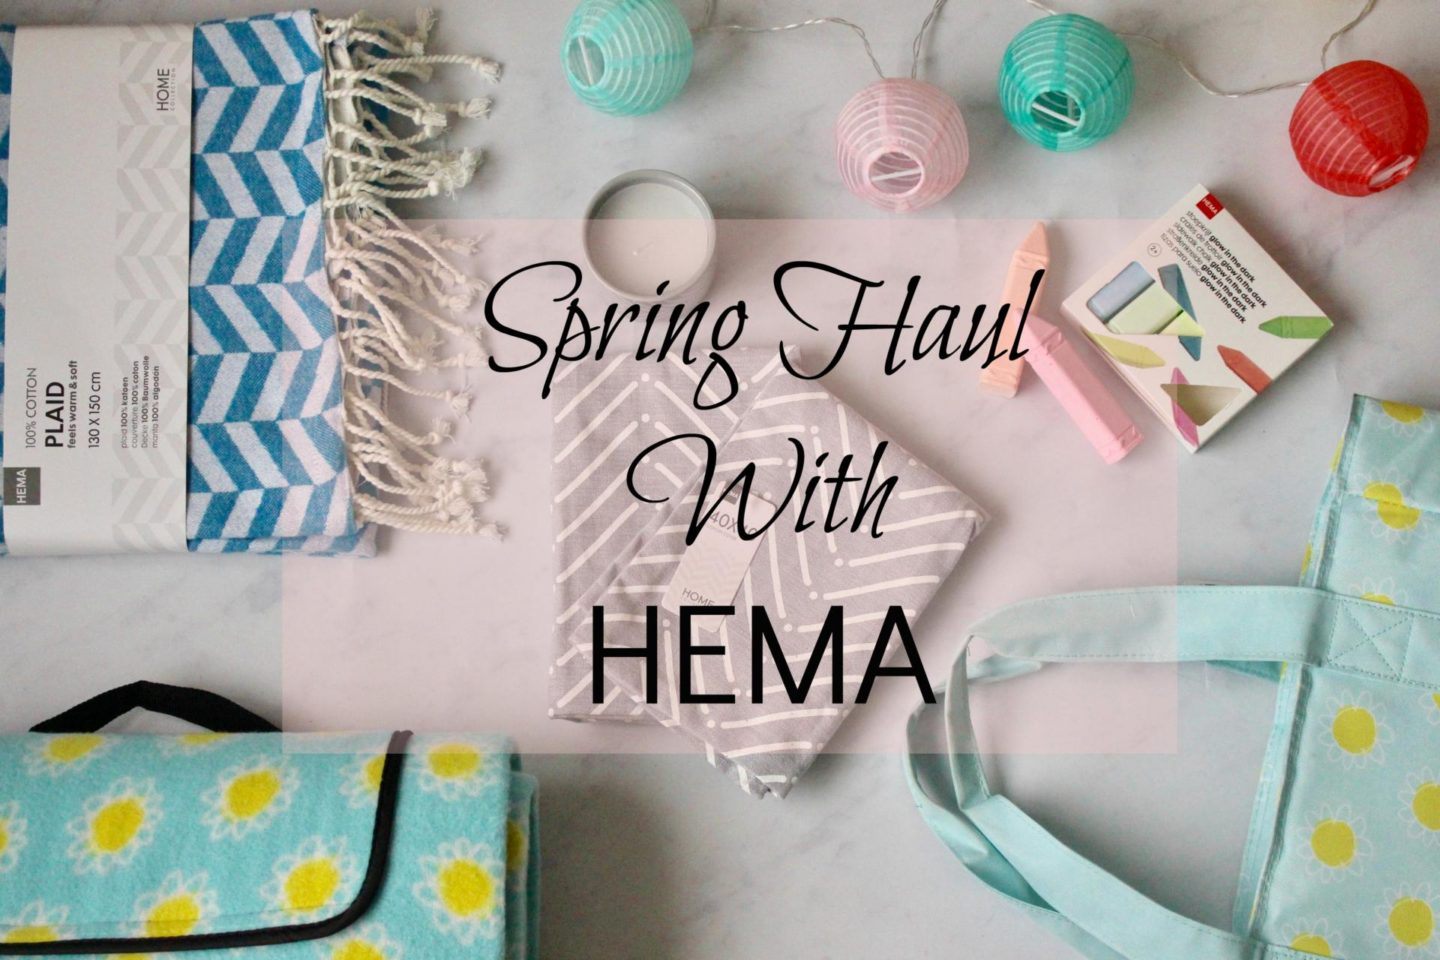 Spring haul with HEMA